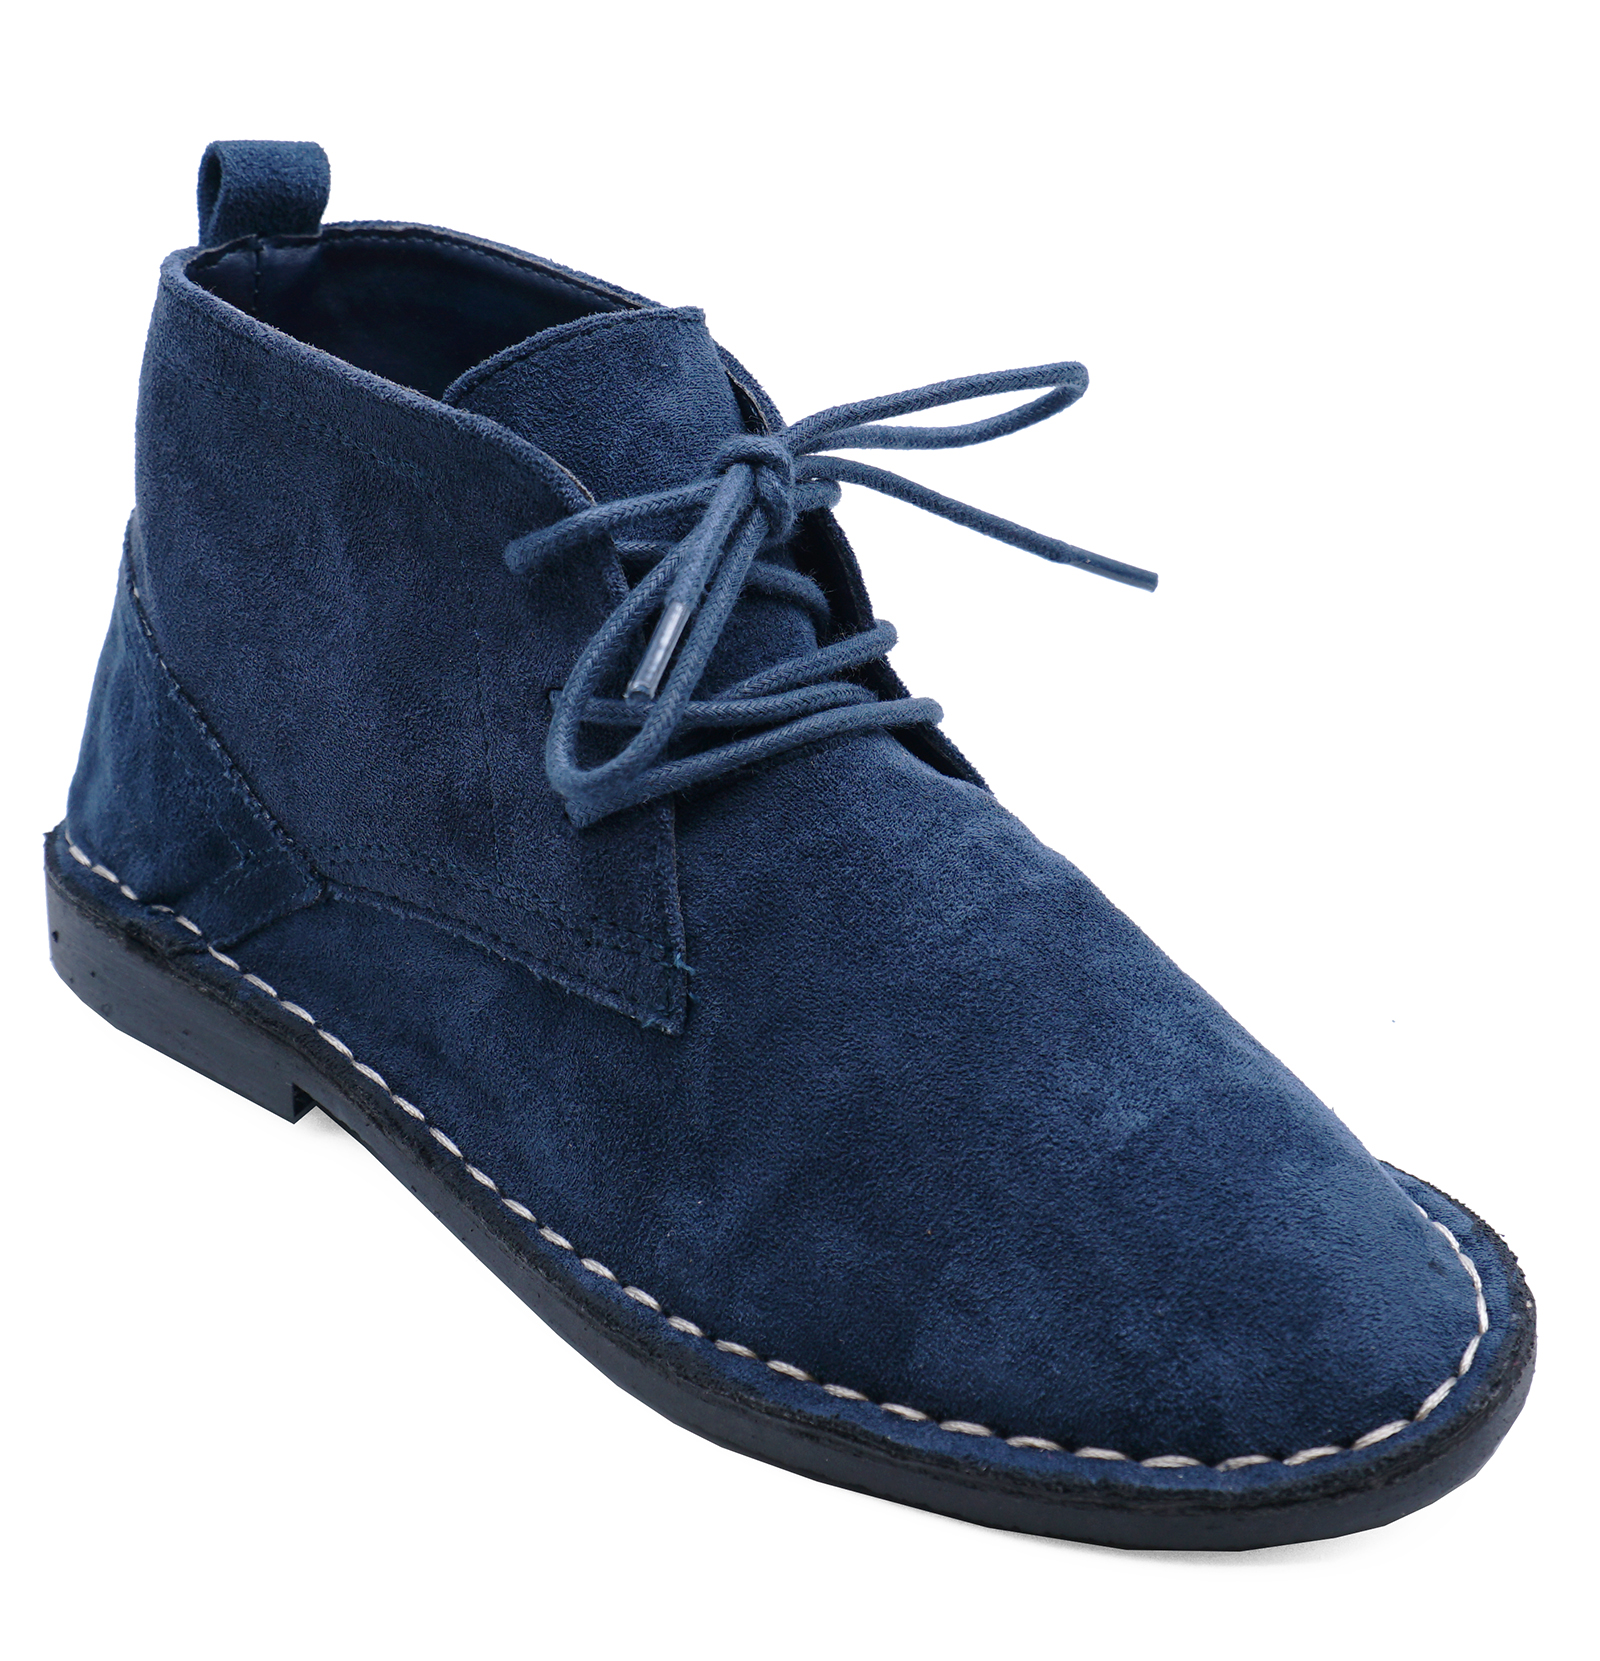 26a28e4f6e0b Sentinel BOYS KIDS NAVY DESERT DEALER LACE-UP SMART CASUAL ANKLE BOOTS SHOES  SIZES 6-